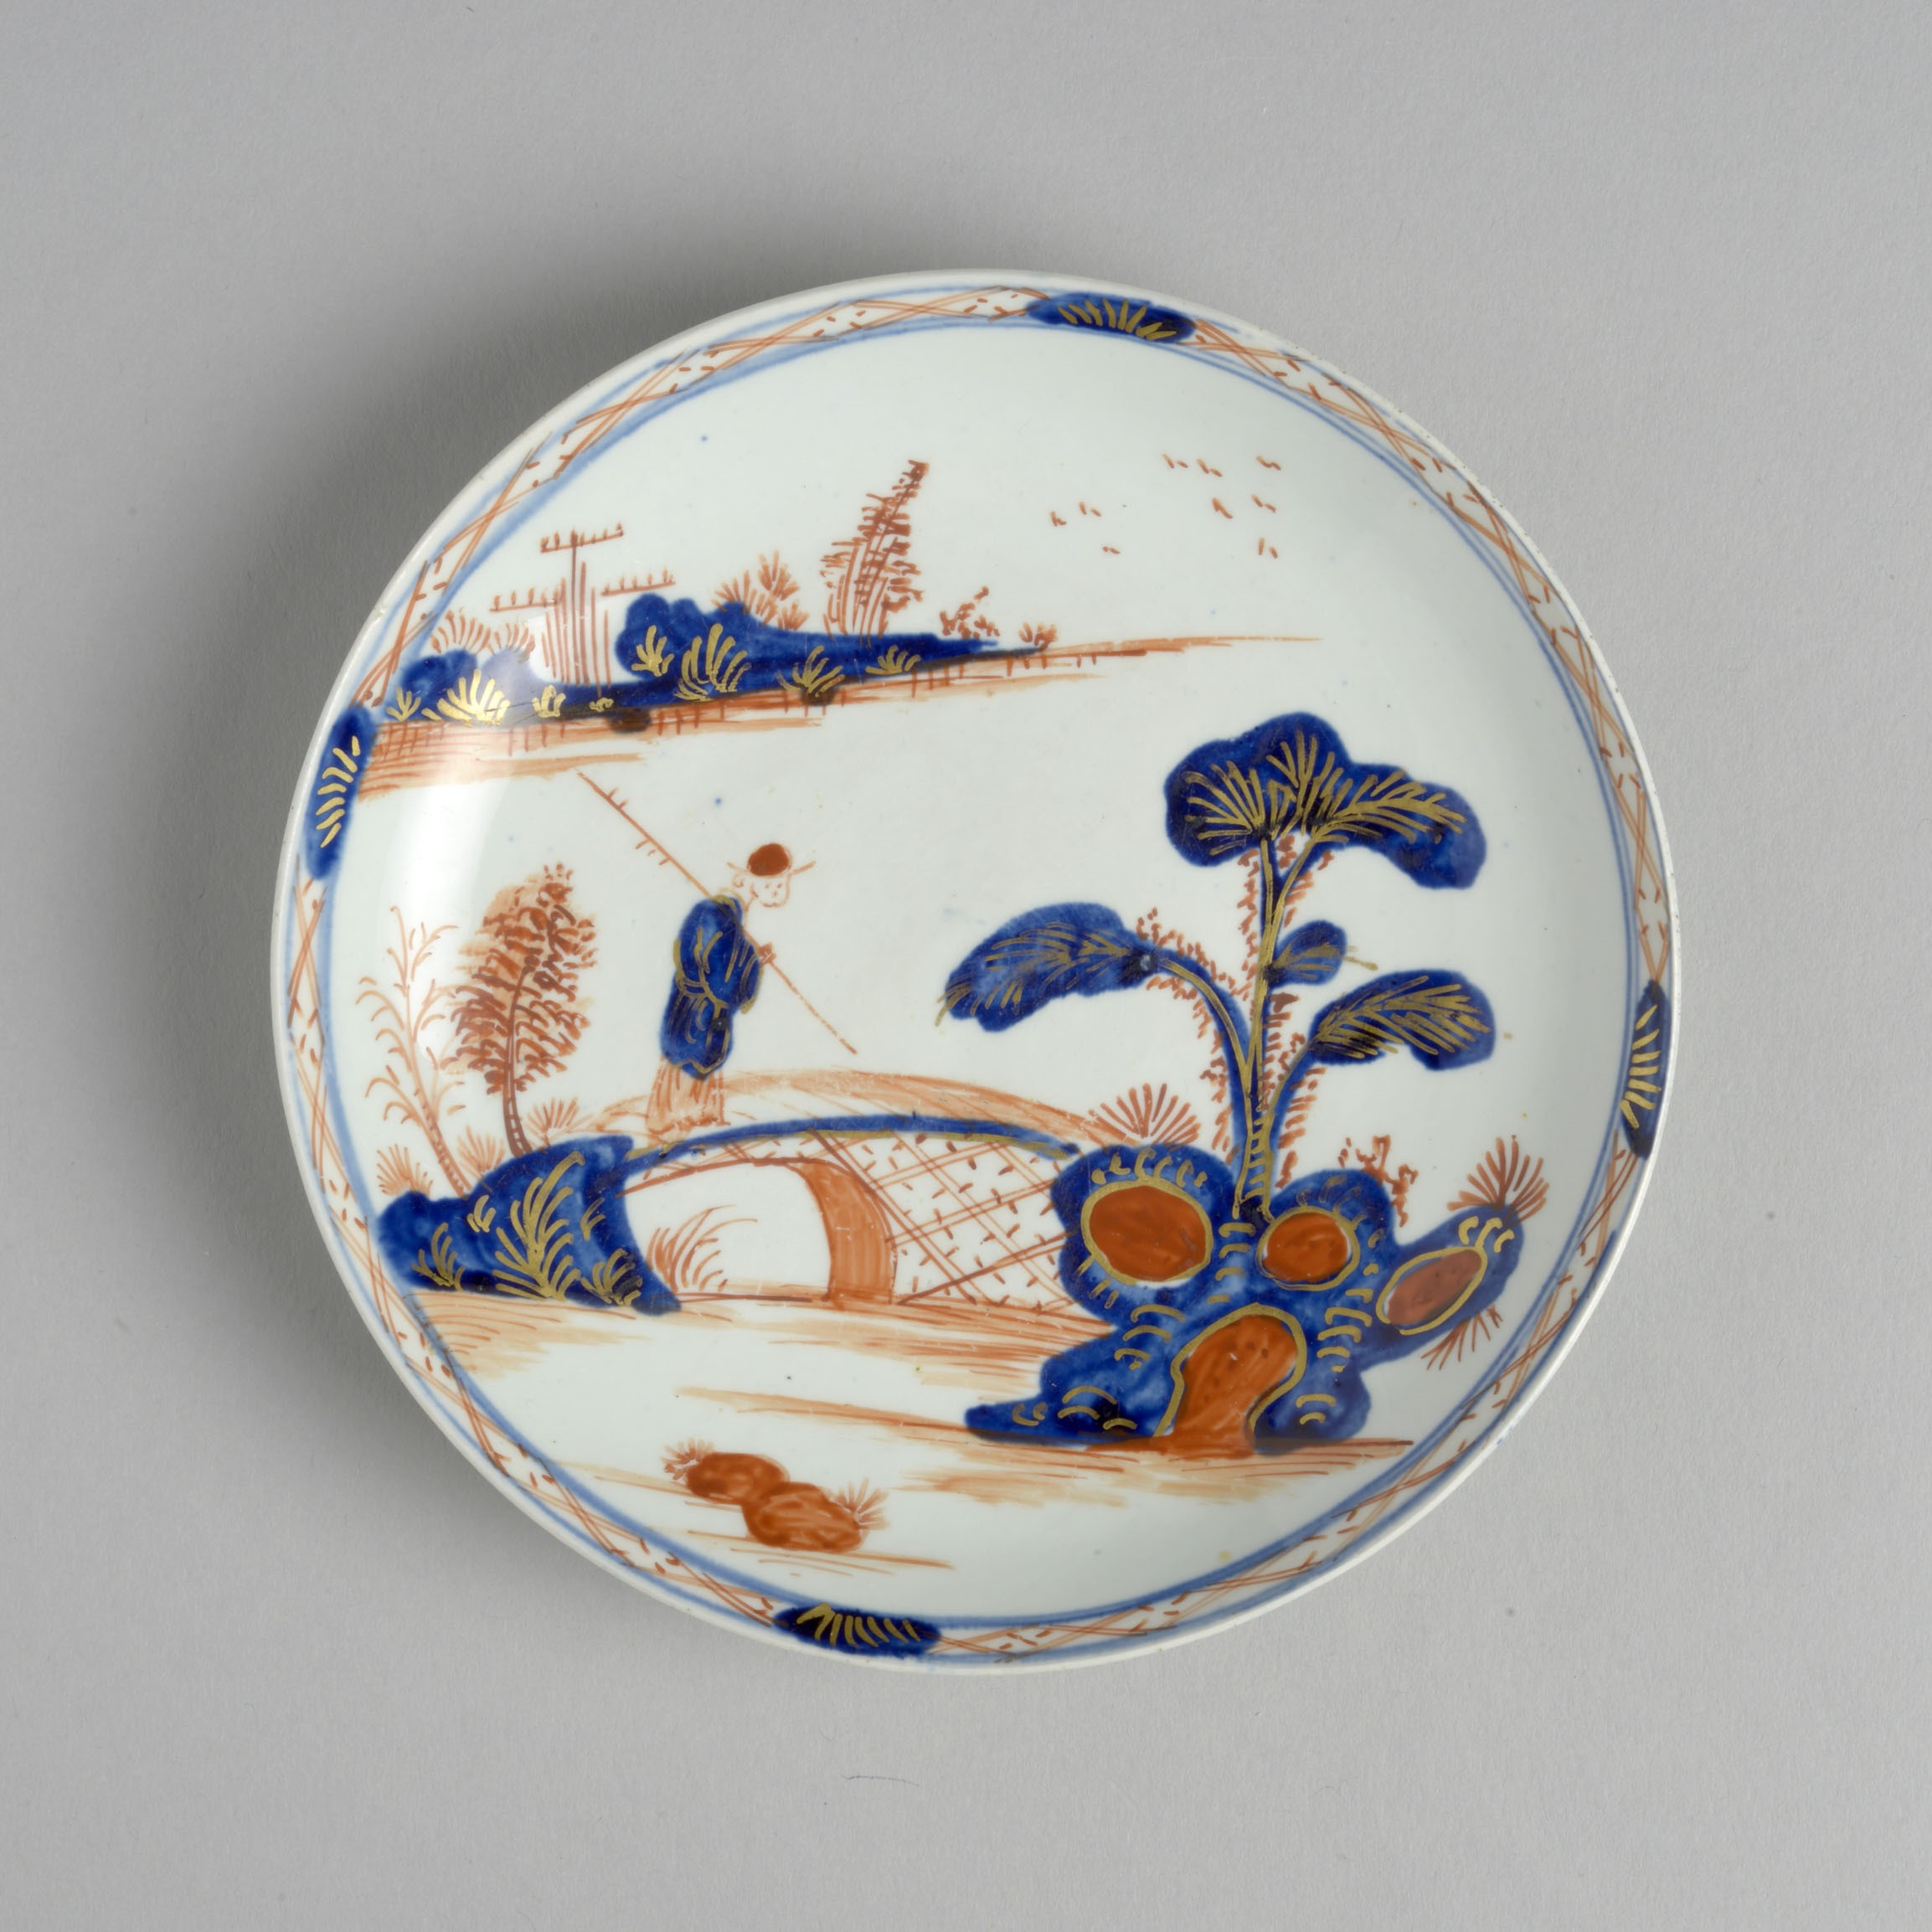 A white saucer decorated with a design which is clearly inspired by willow pattern - a man crossing a chinese bridge - but in orange as well as blue.